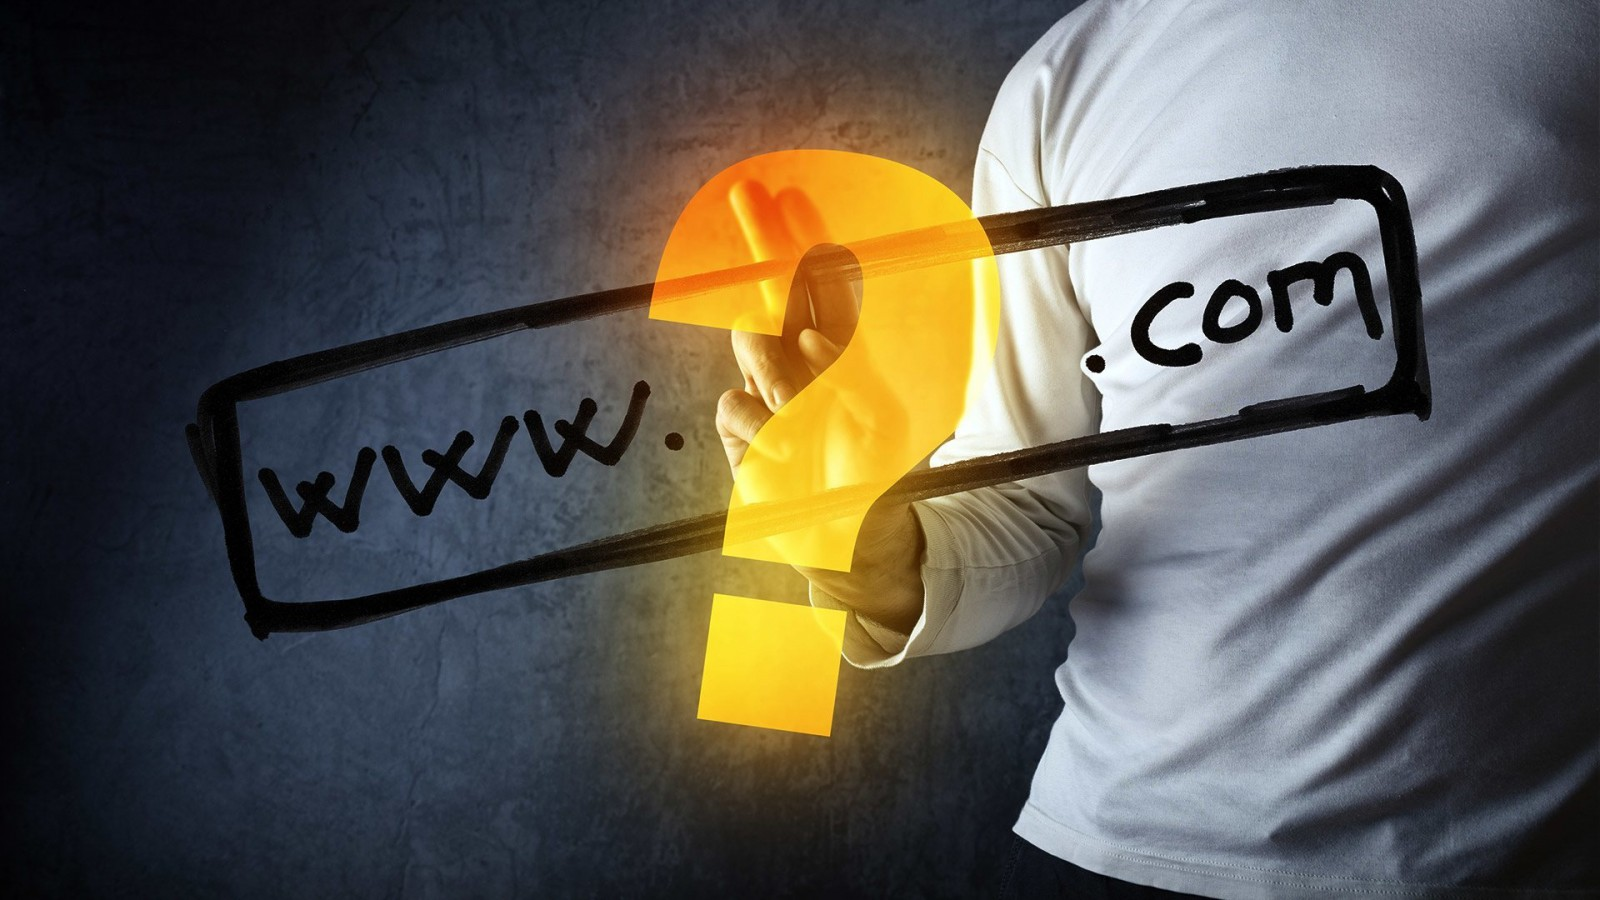 8 Tips for Choosing the Perfect Domain Name - Use Keywords In Your Domain Name